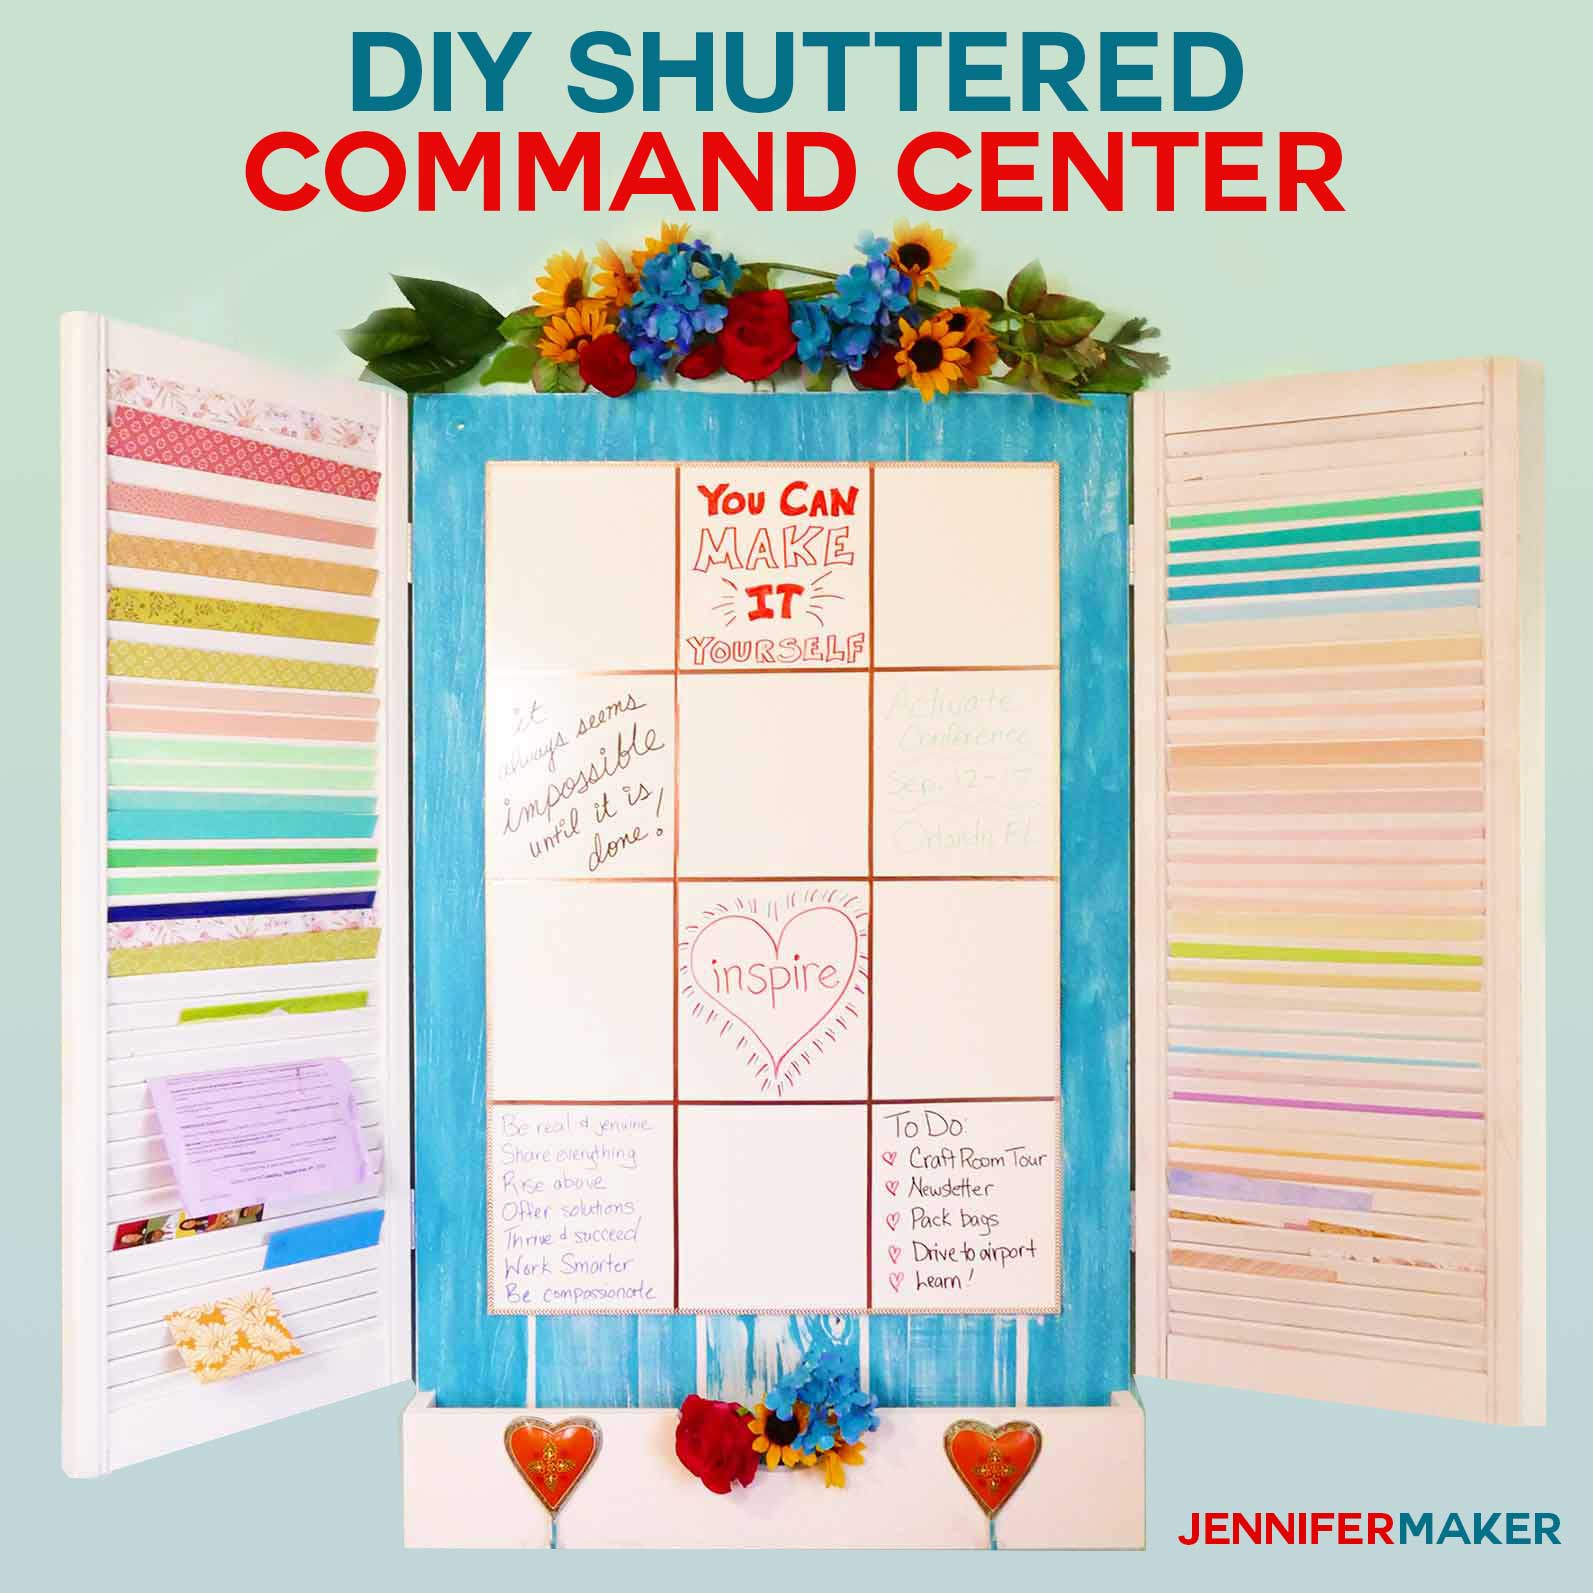 DIY Command Center with shutters for paper storage #craftroom #organization #storage